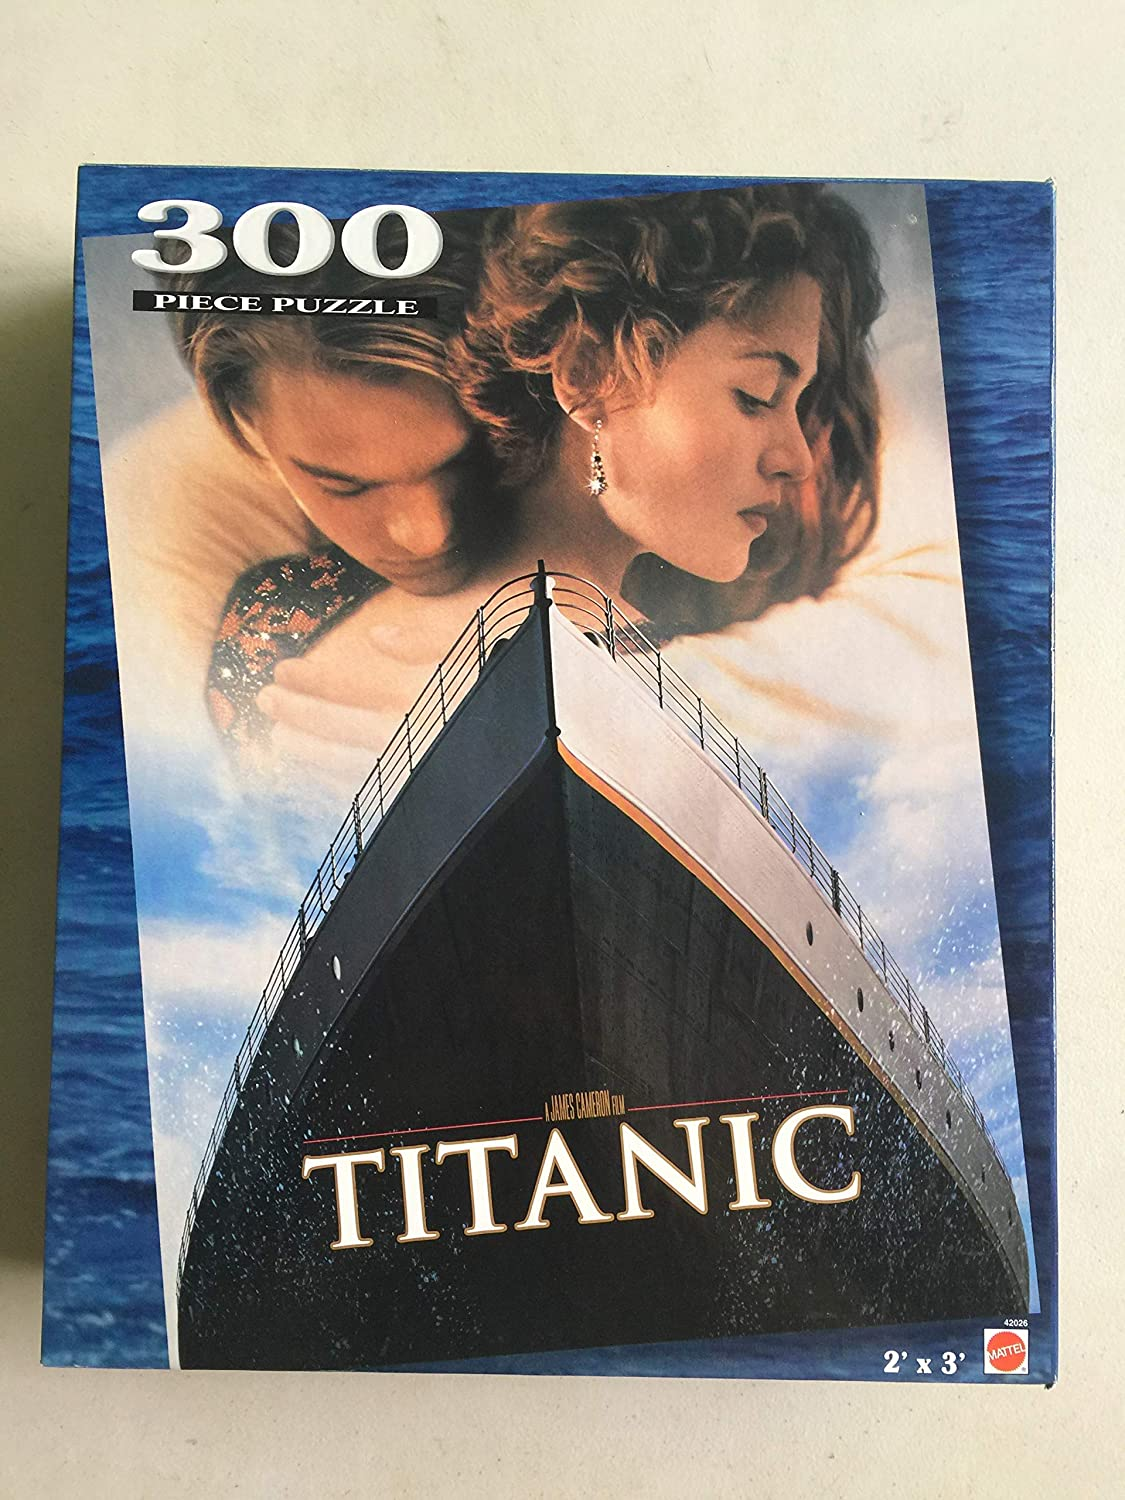 Amazon Com Movie Poster Titanic 300 Piece Jigsaw Puzzle 2 X 3 Toys Games